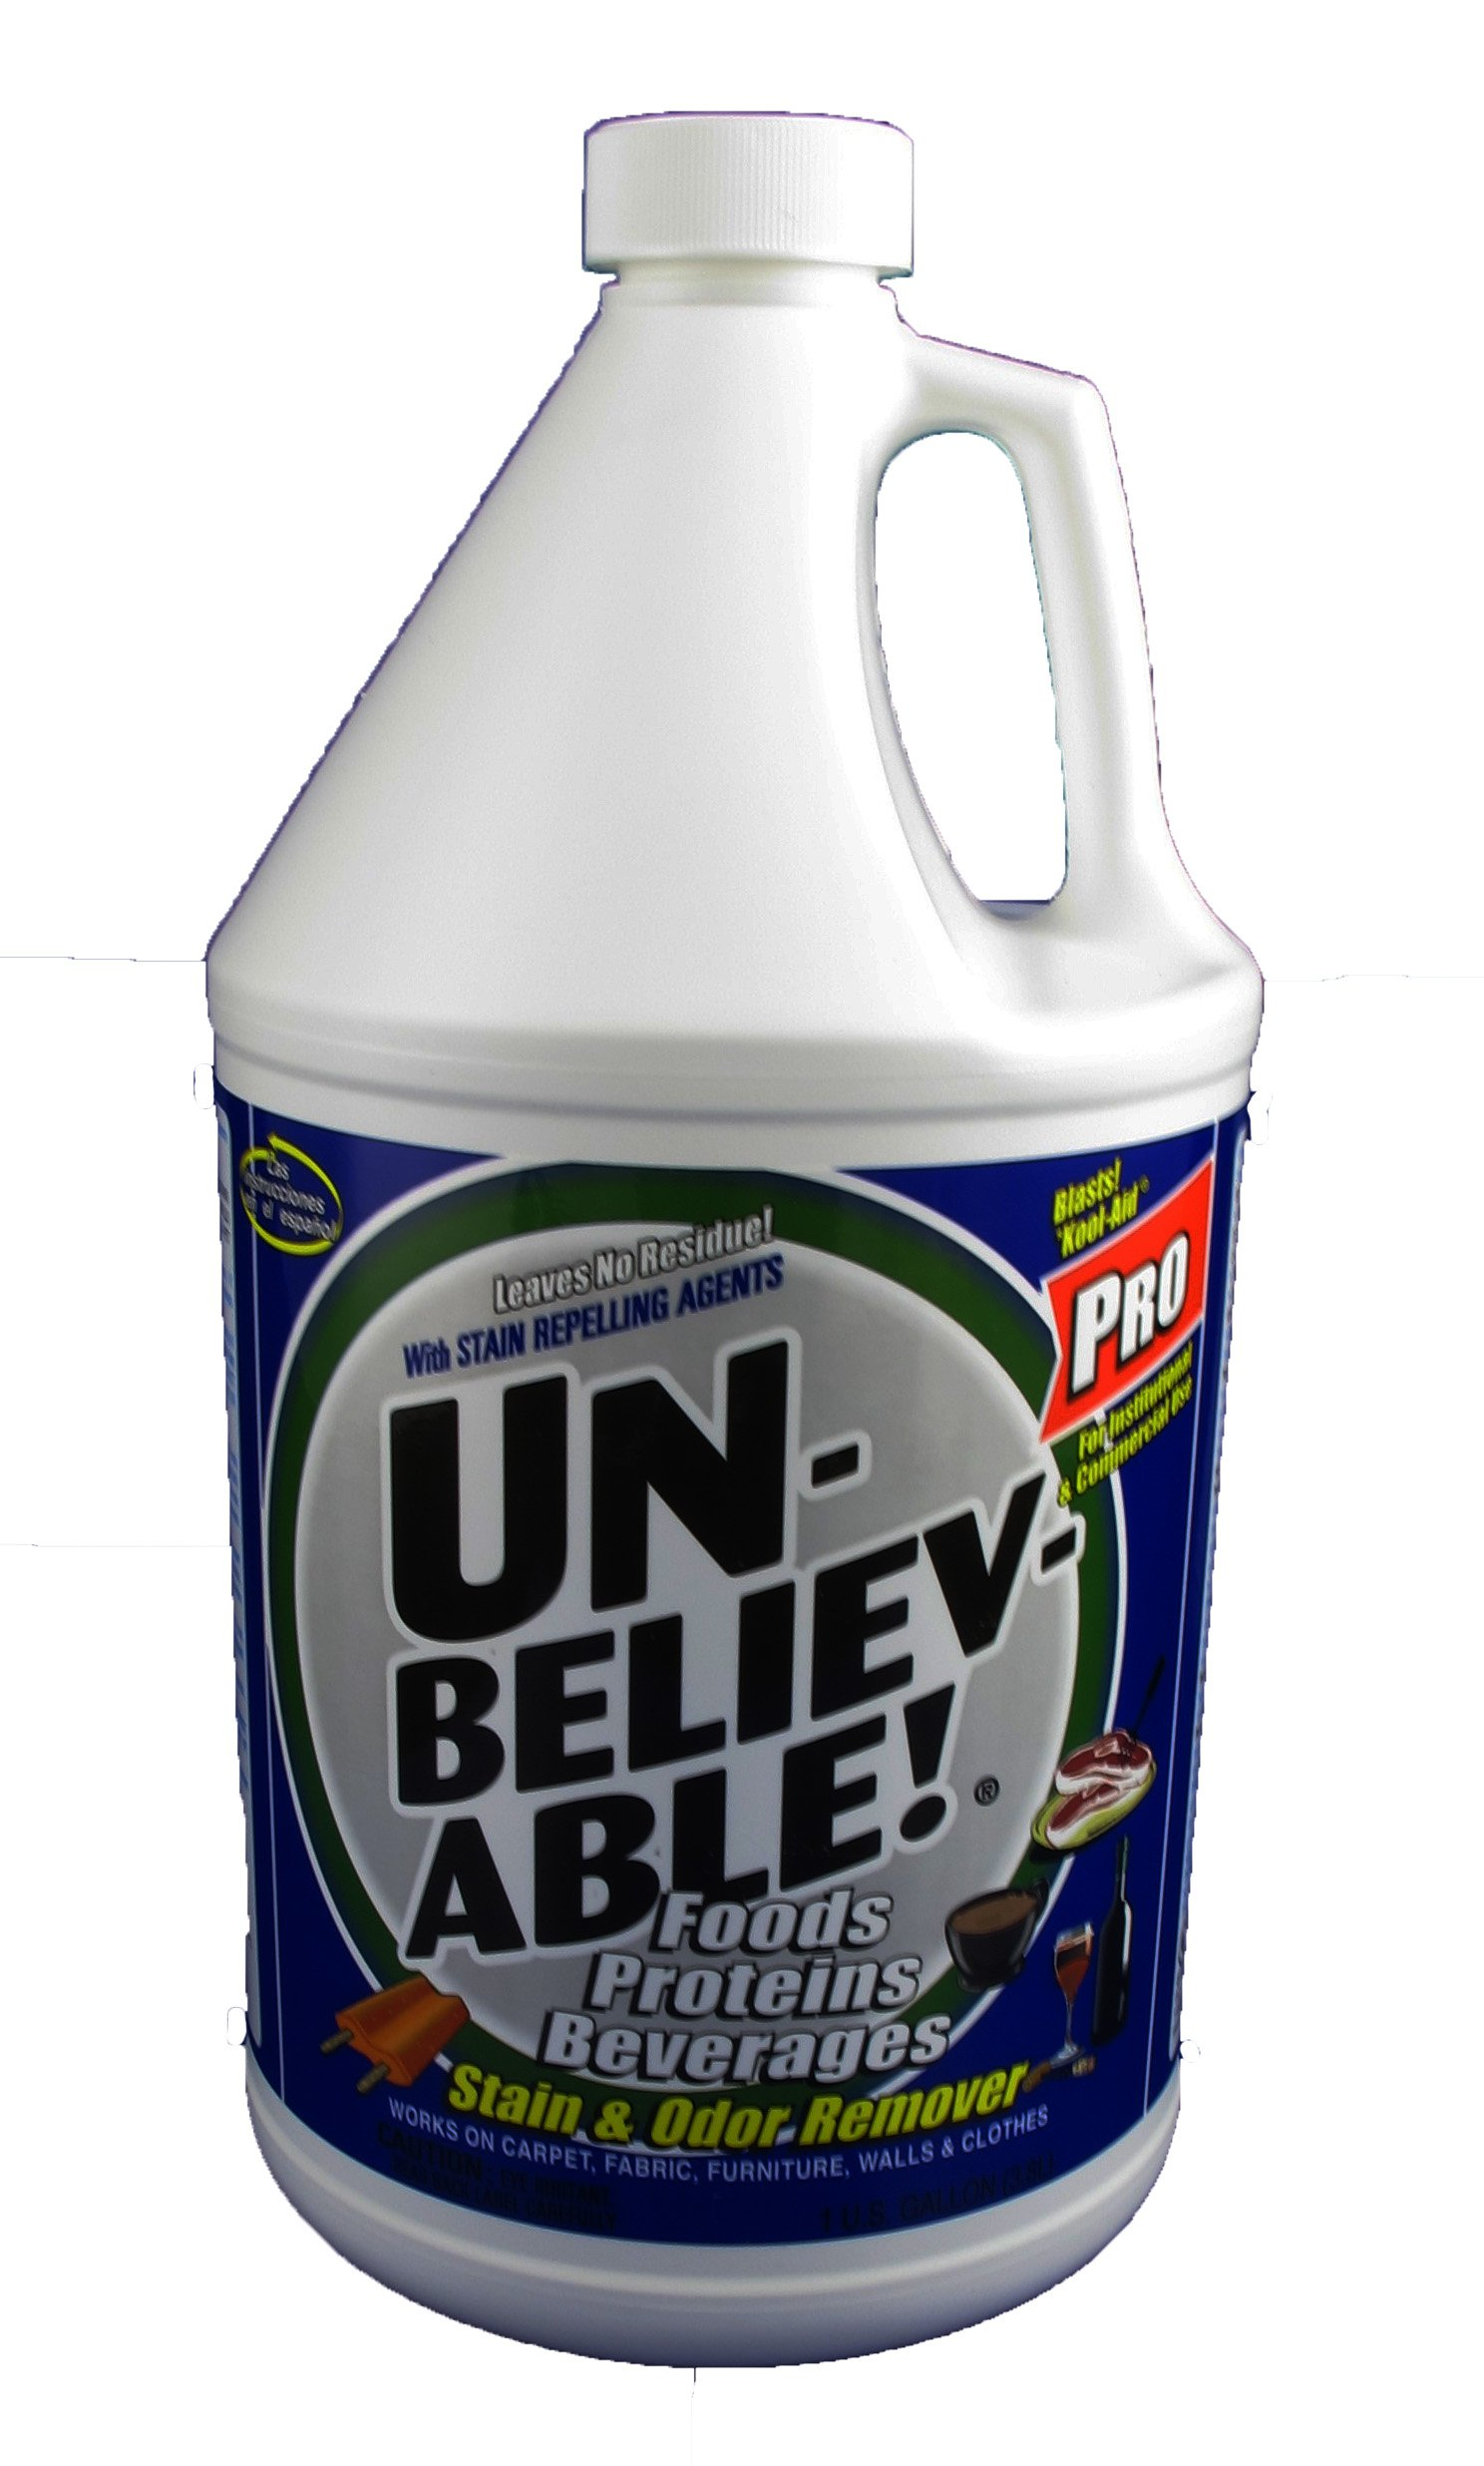 Unbelievable! UPSO-128 1 Gallon Pro Stain & Odor Remover (Case of 4)